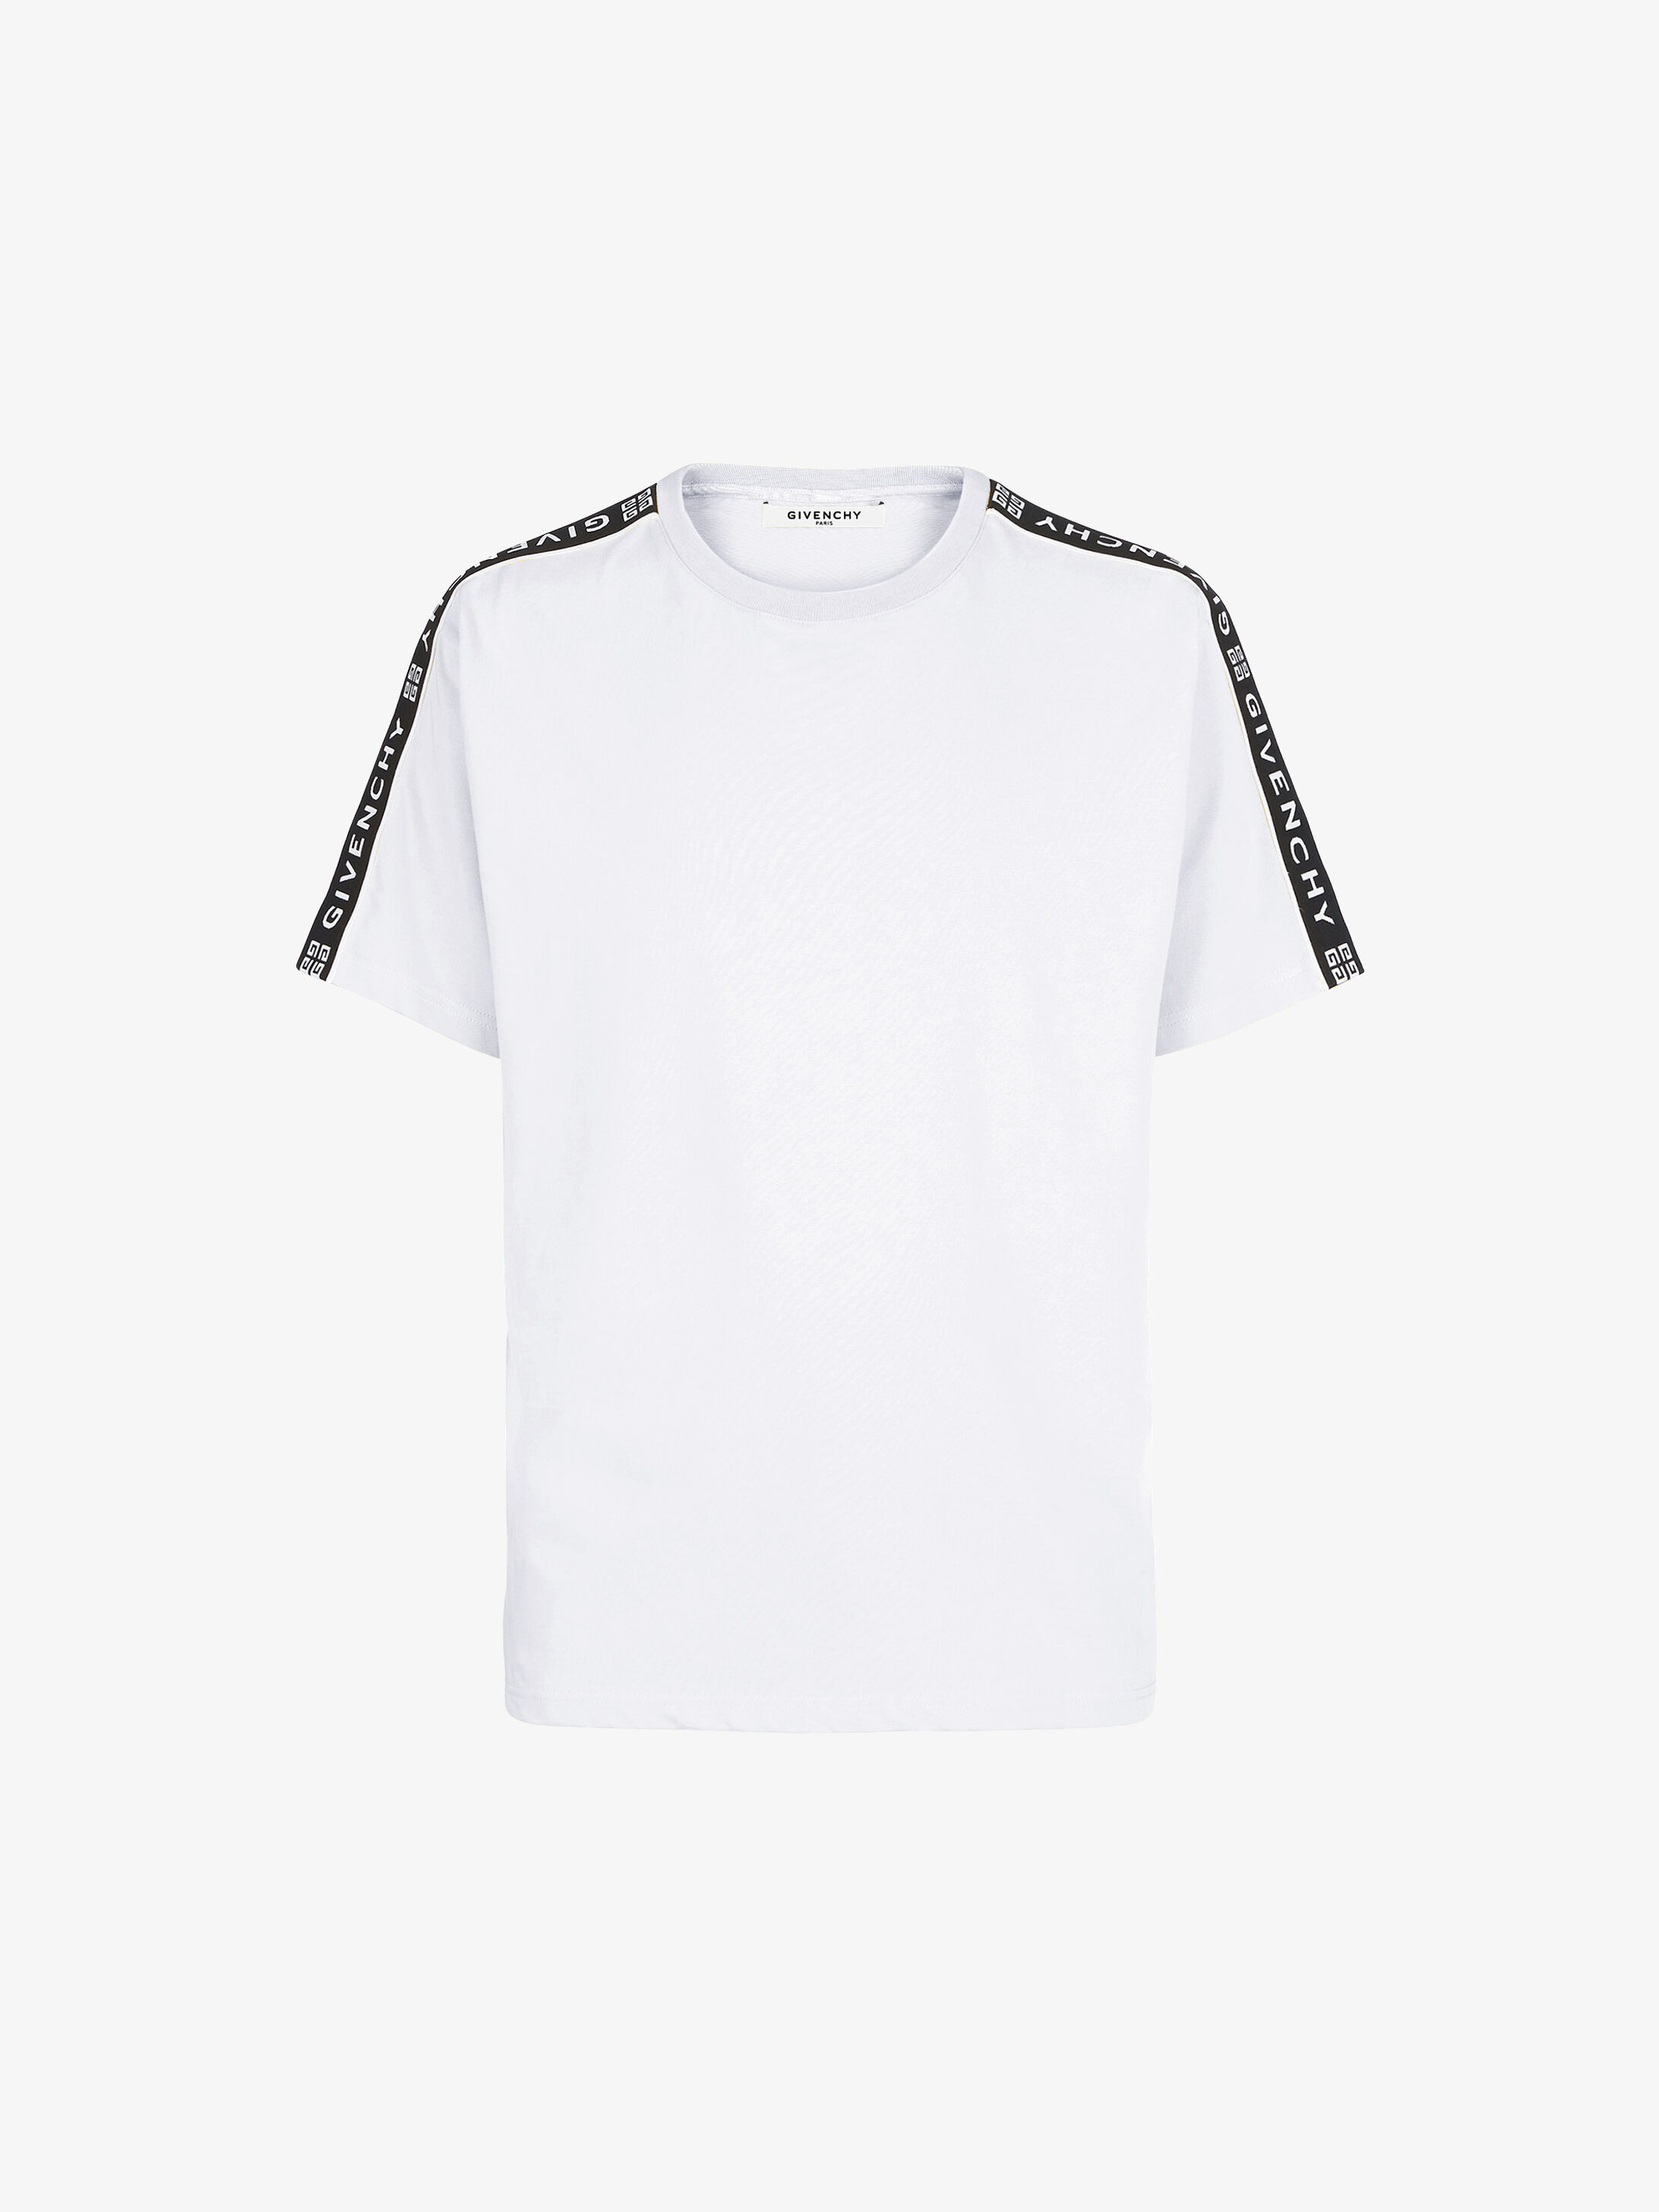 86598485c262 Men s T-Shirts collection by Givenchy.